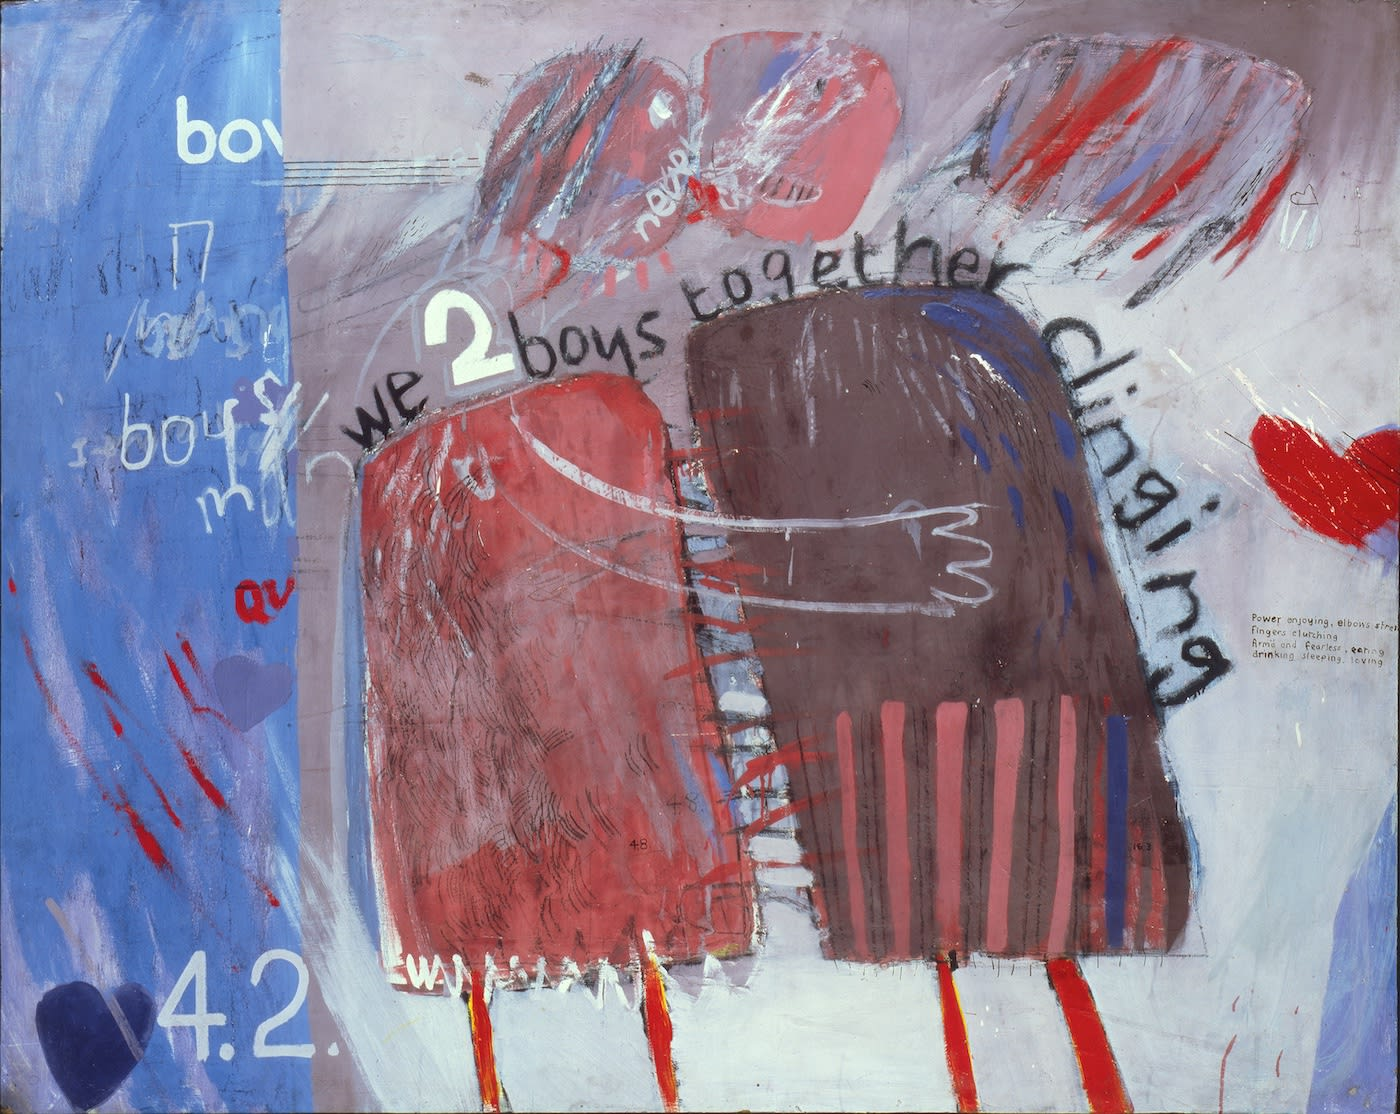 """David Hockney, """"We Two Boys Together Clinging"""" (1961), oil on board, 48 x 60 inches; © David Hockney; photo: Prudence Cuming Associates Arts Council Collection, Southbank Centre, London"""